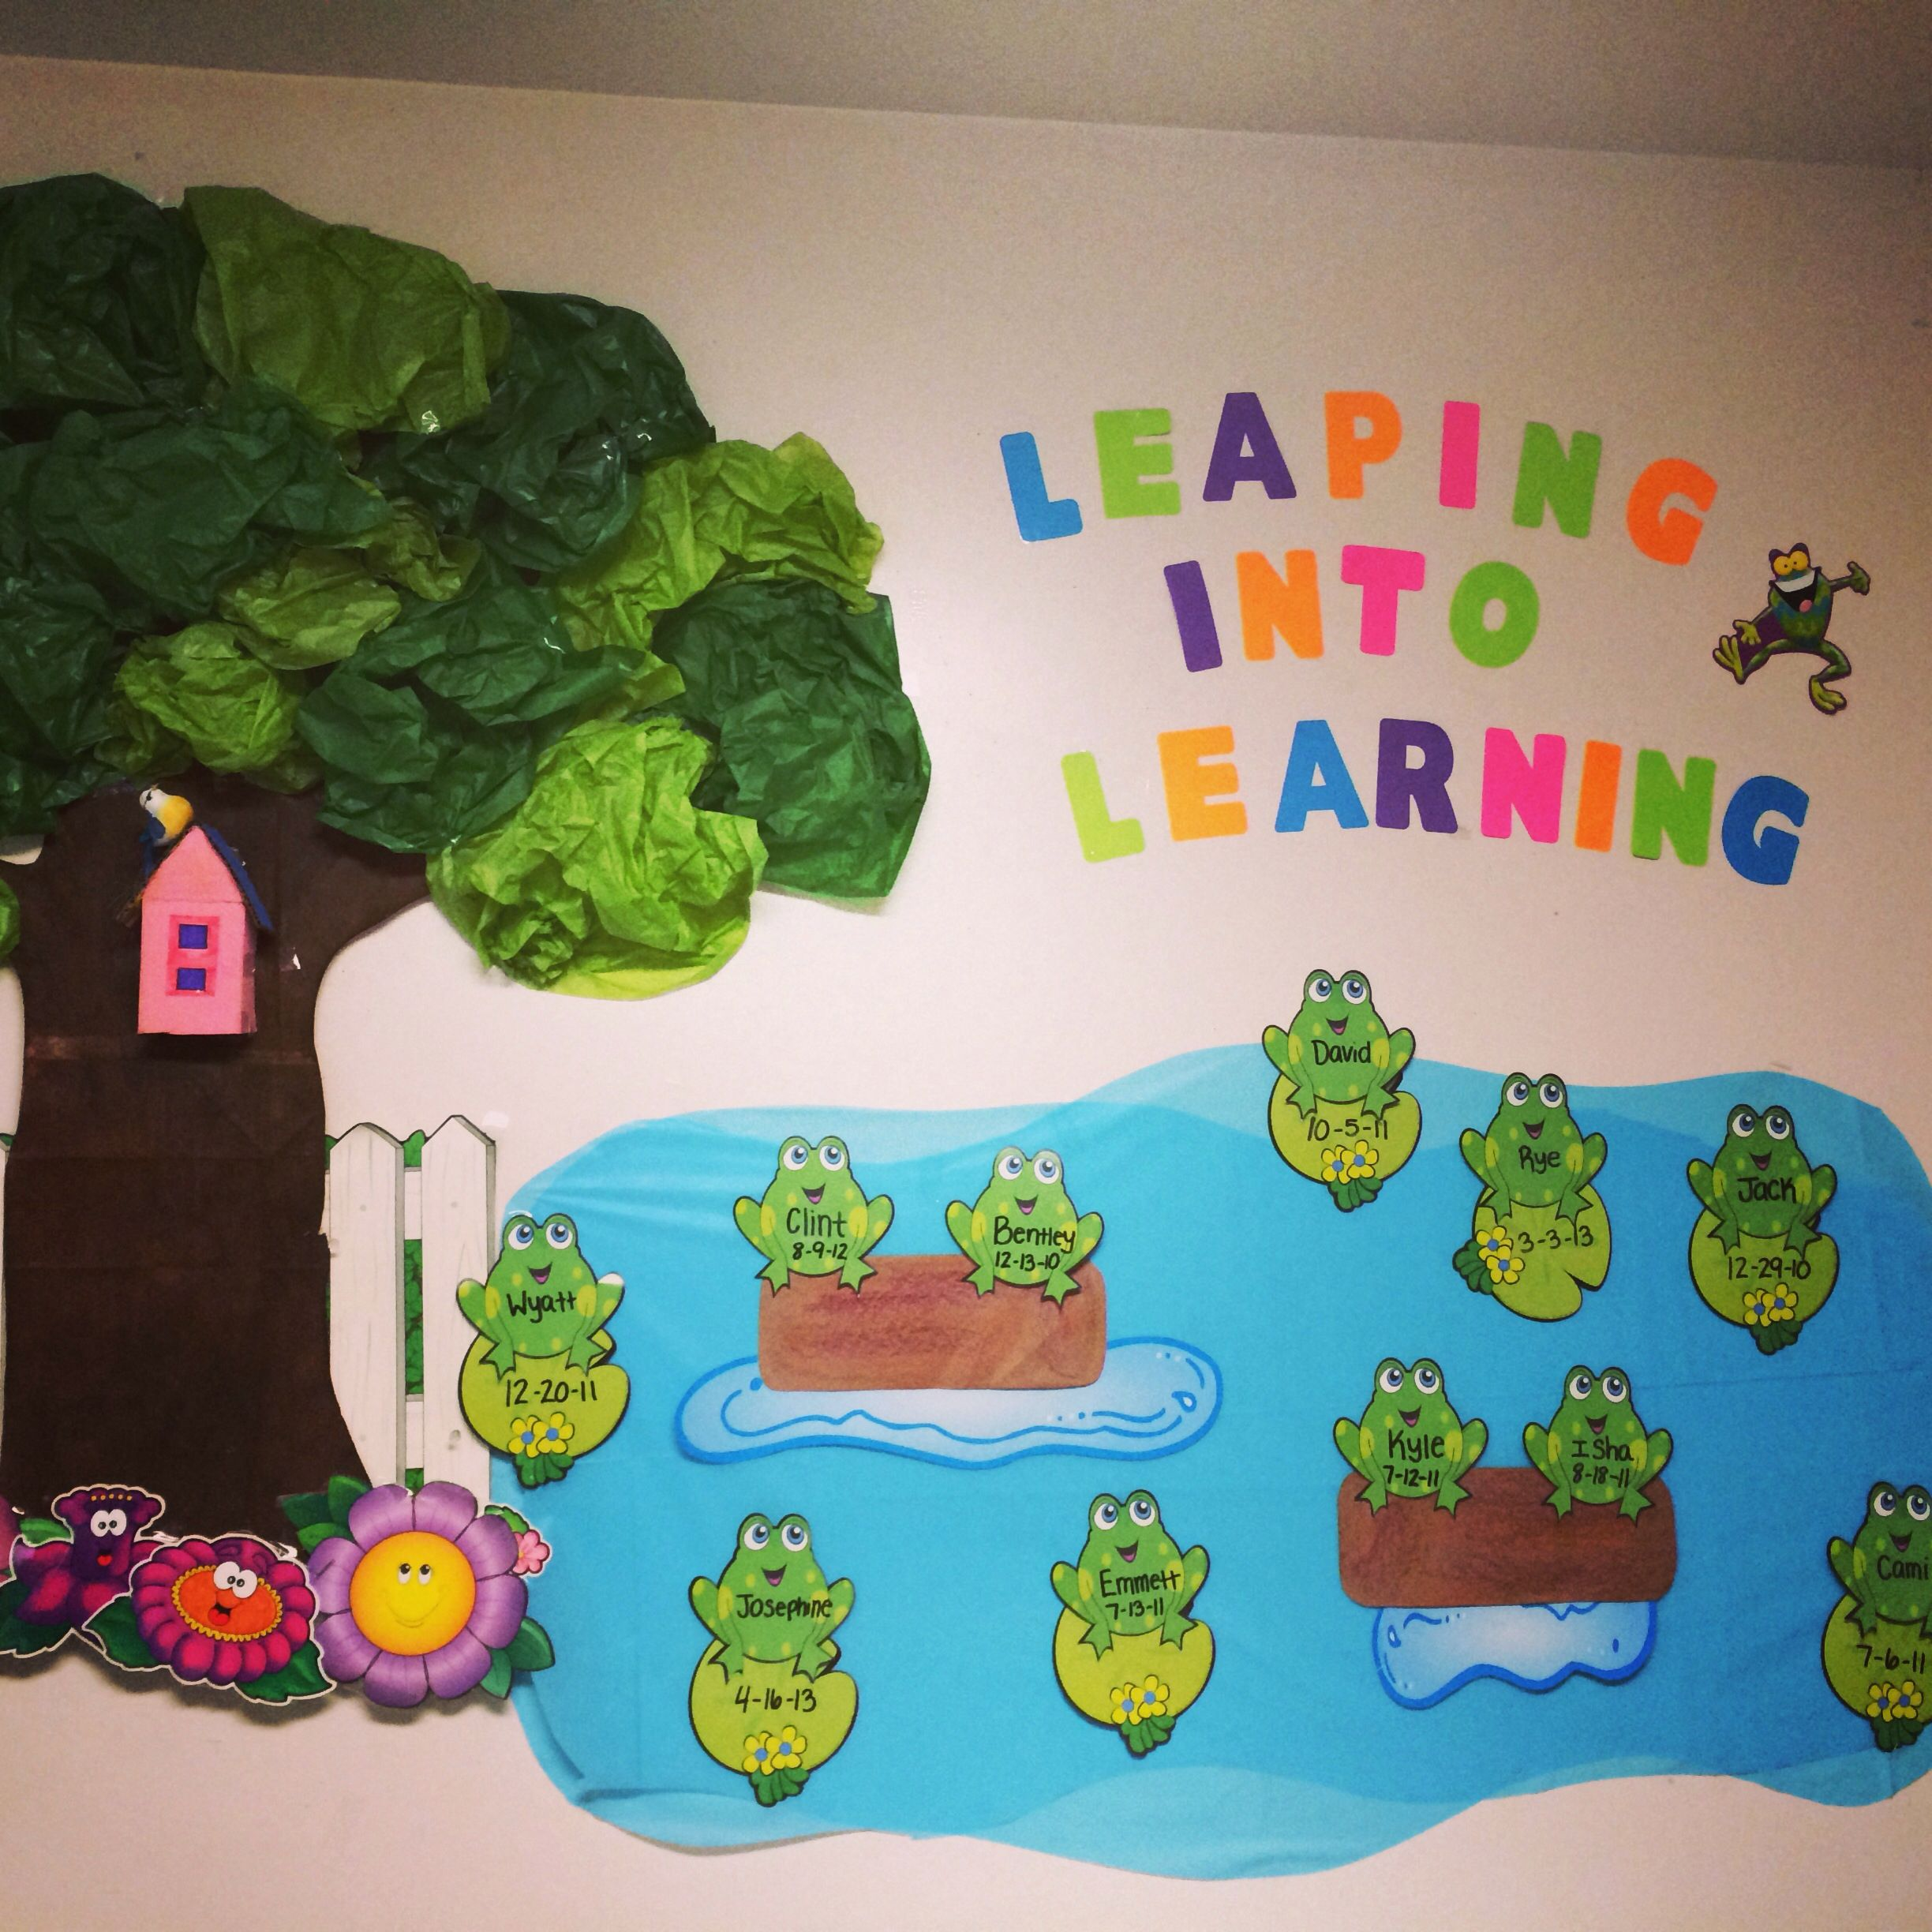 Leaping into learning toddler classroom decorations for Classroom mural ideas